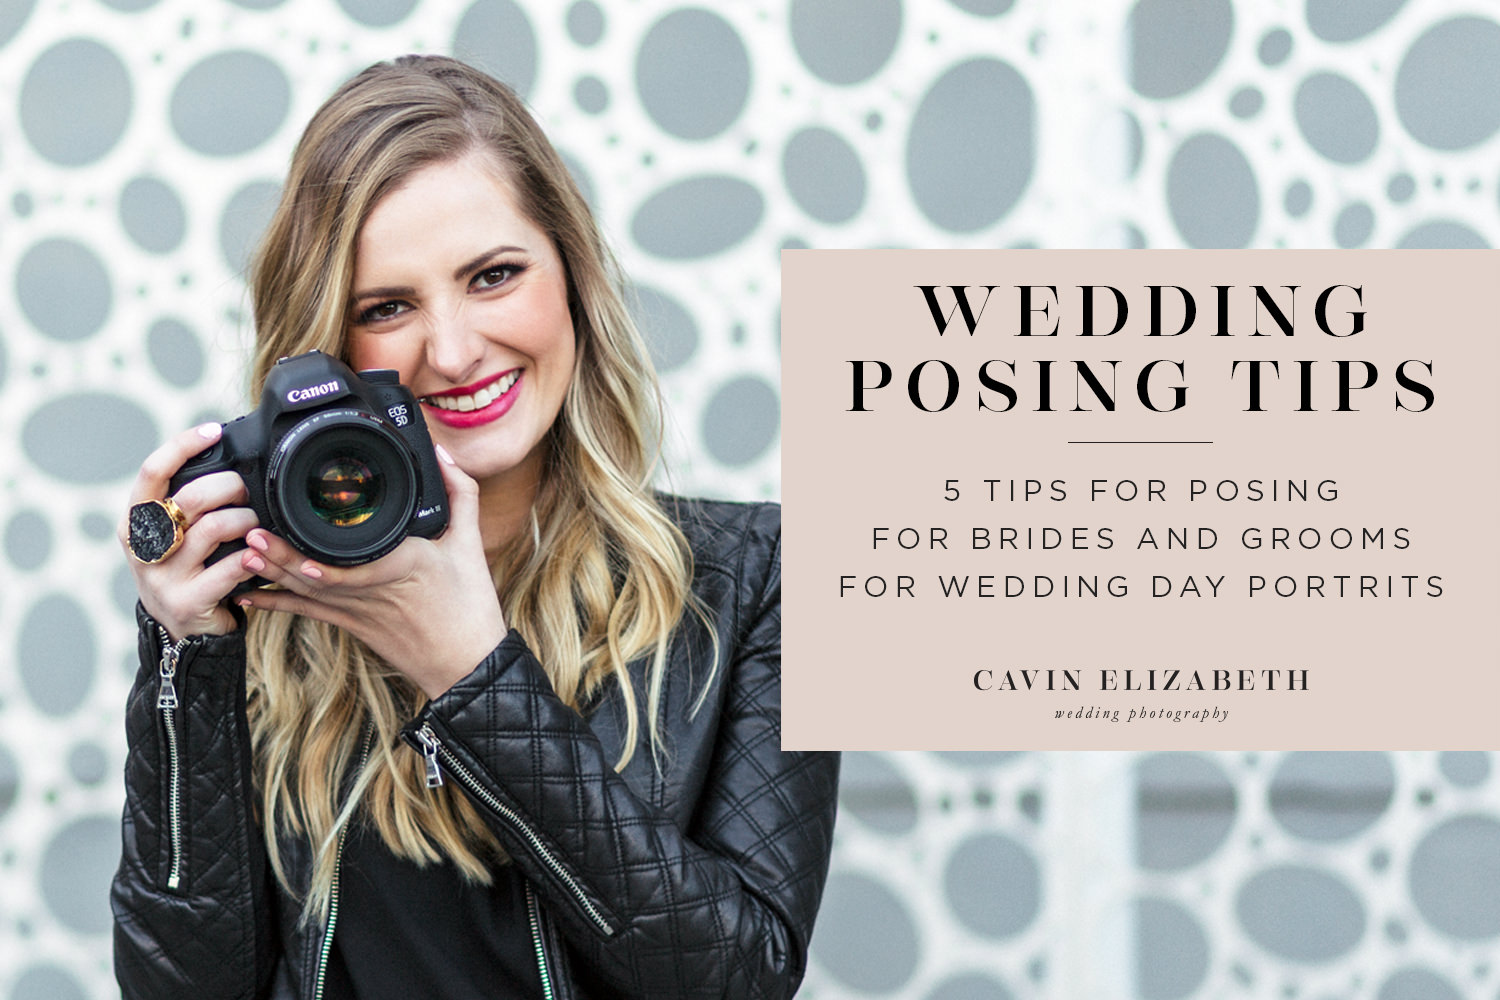 5 Posing Tips for Brides & Grooms from a Photographer